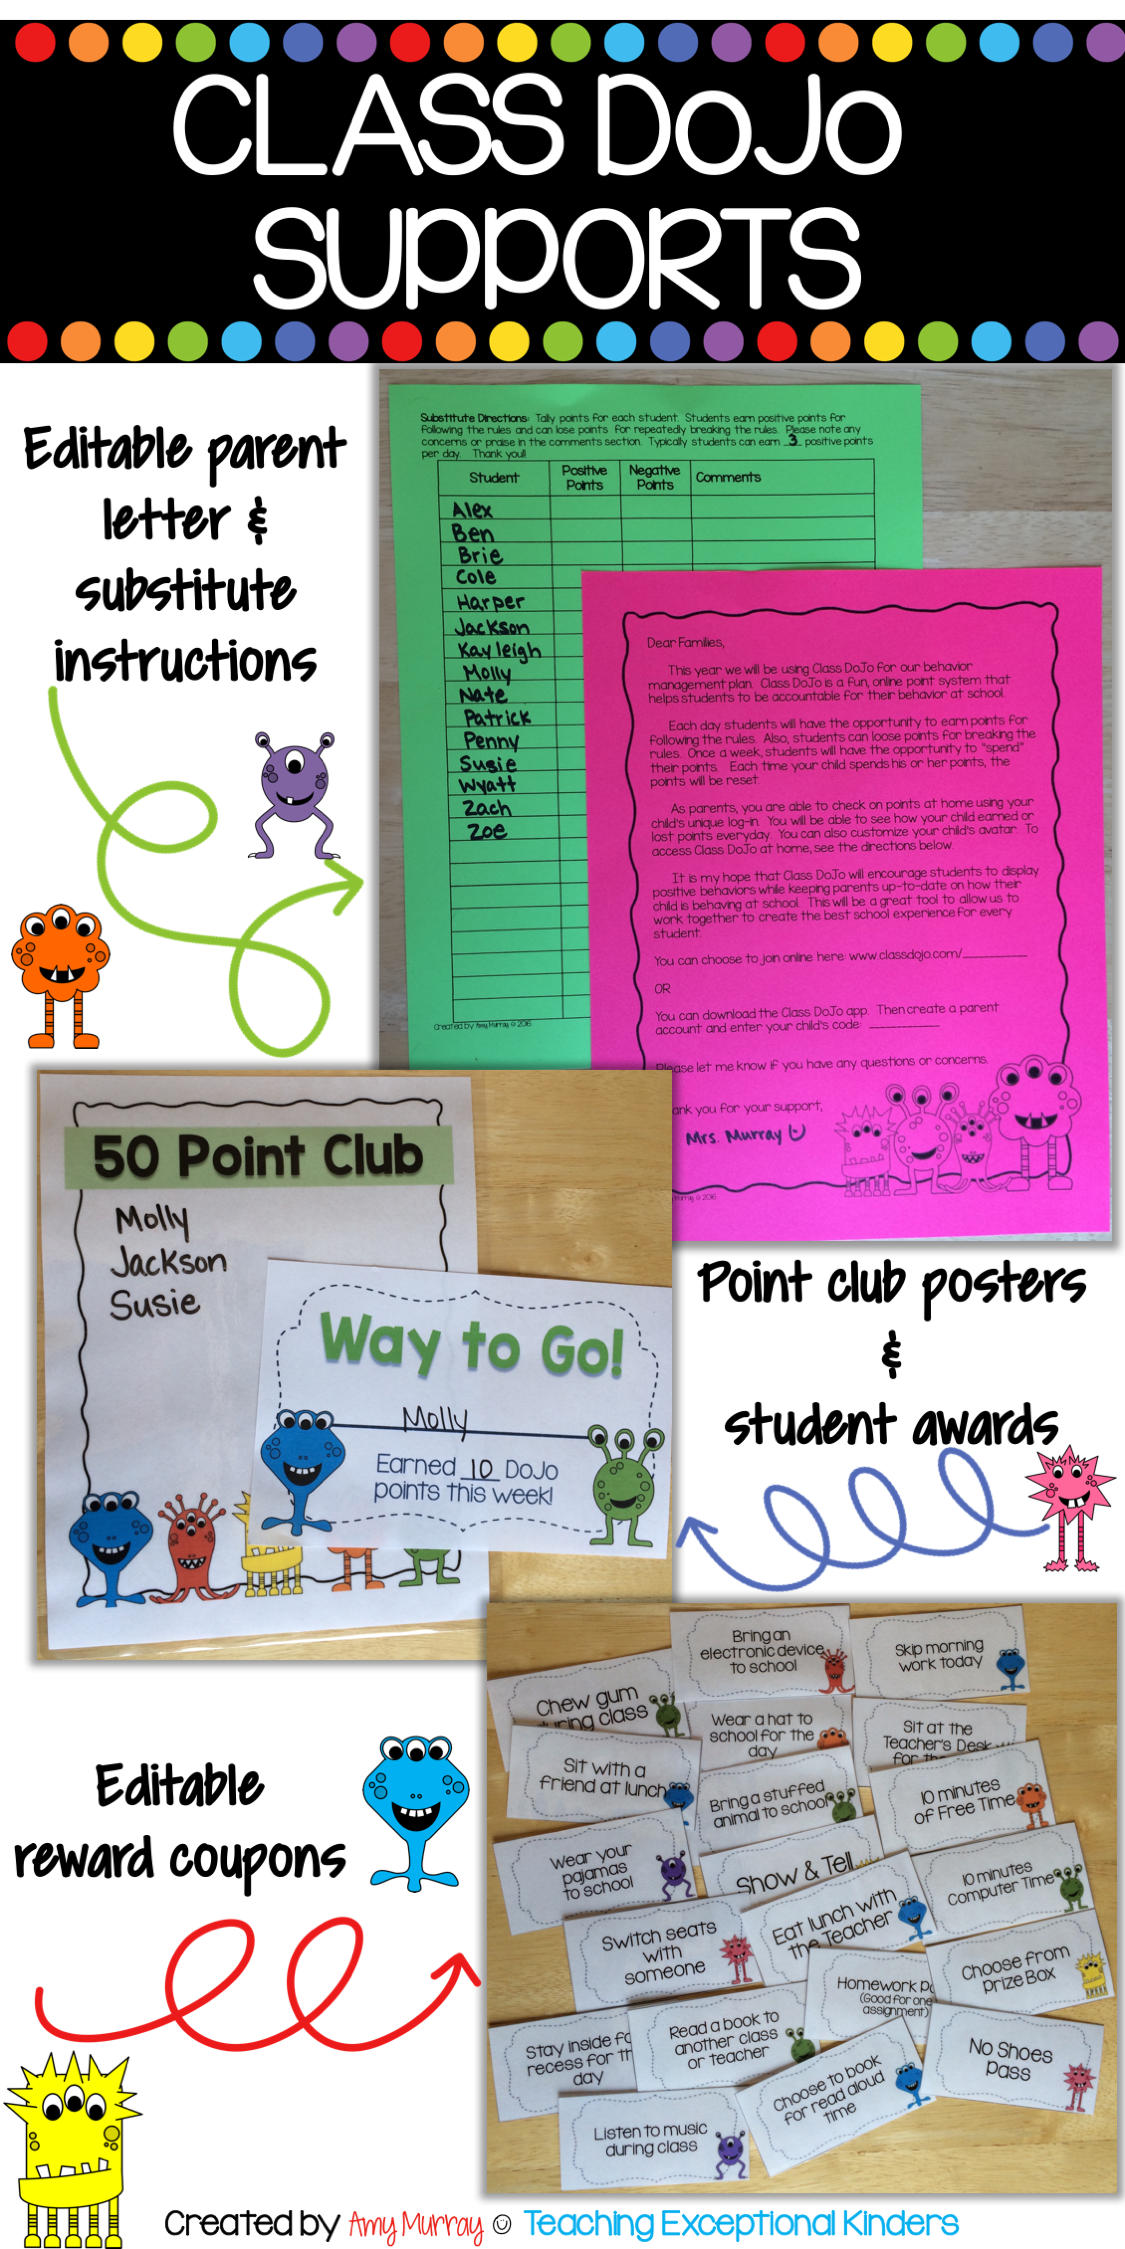 Class Dojo Supports for Behavior Management (editable